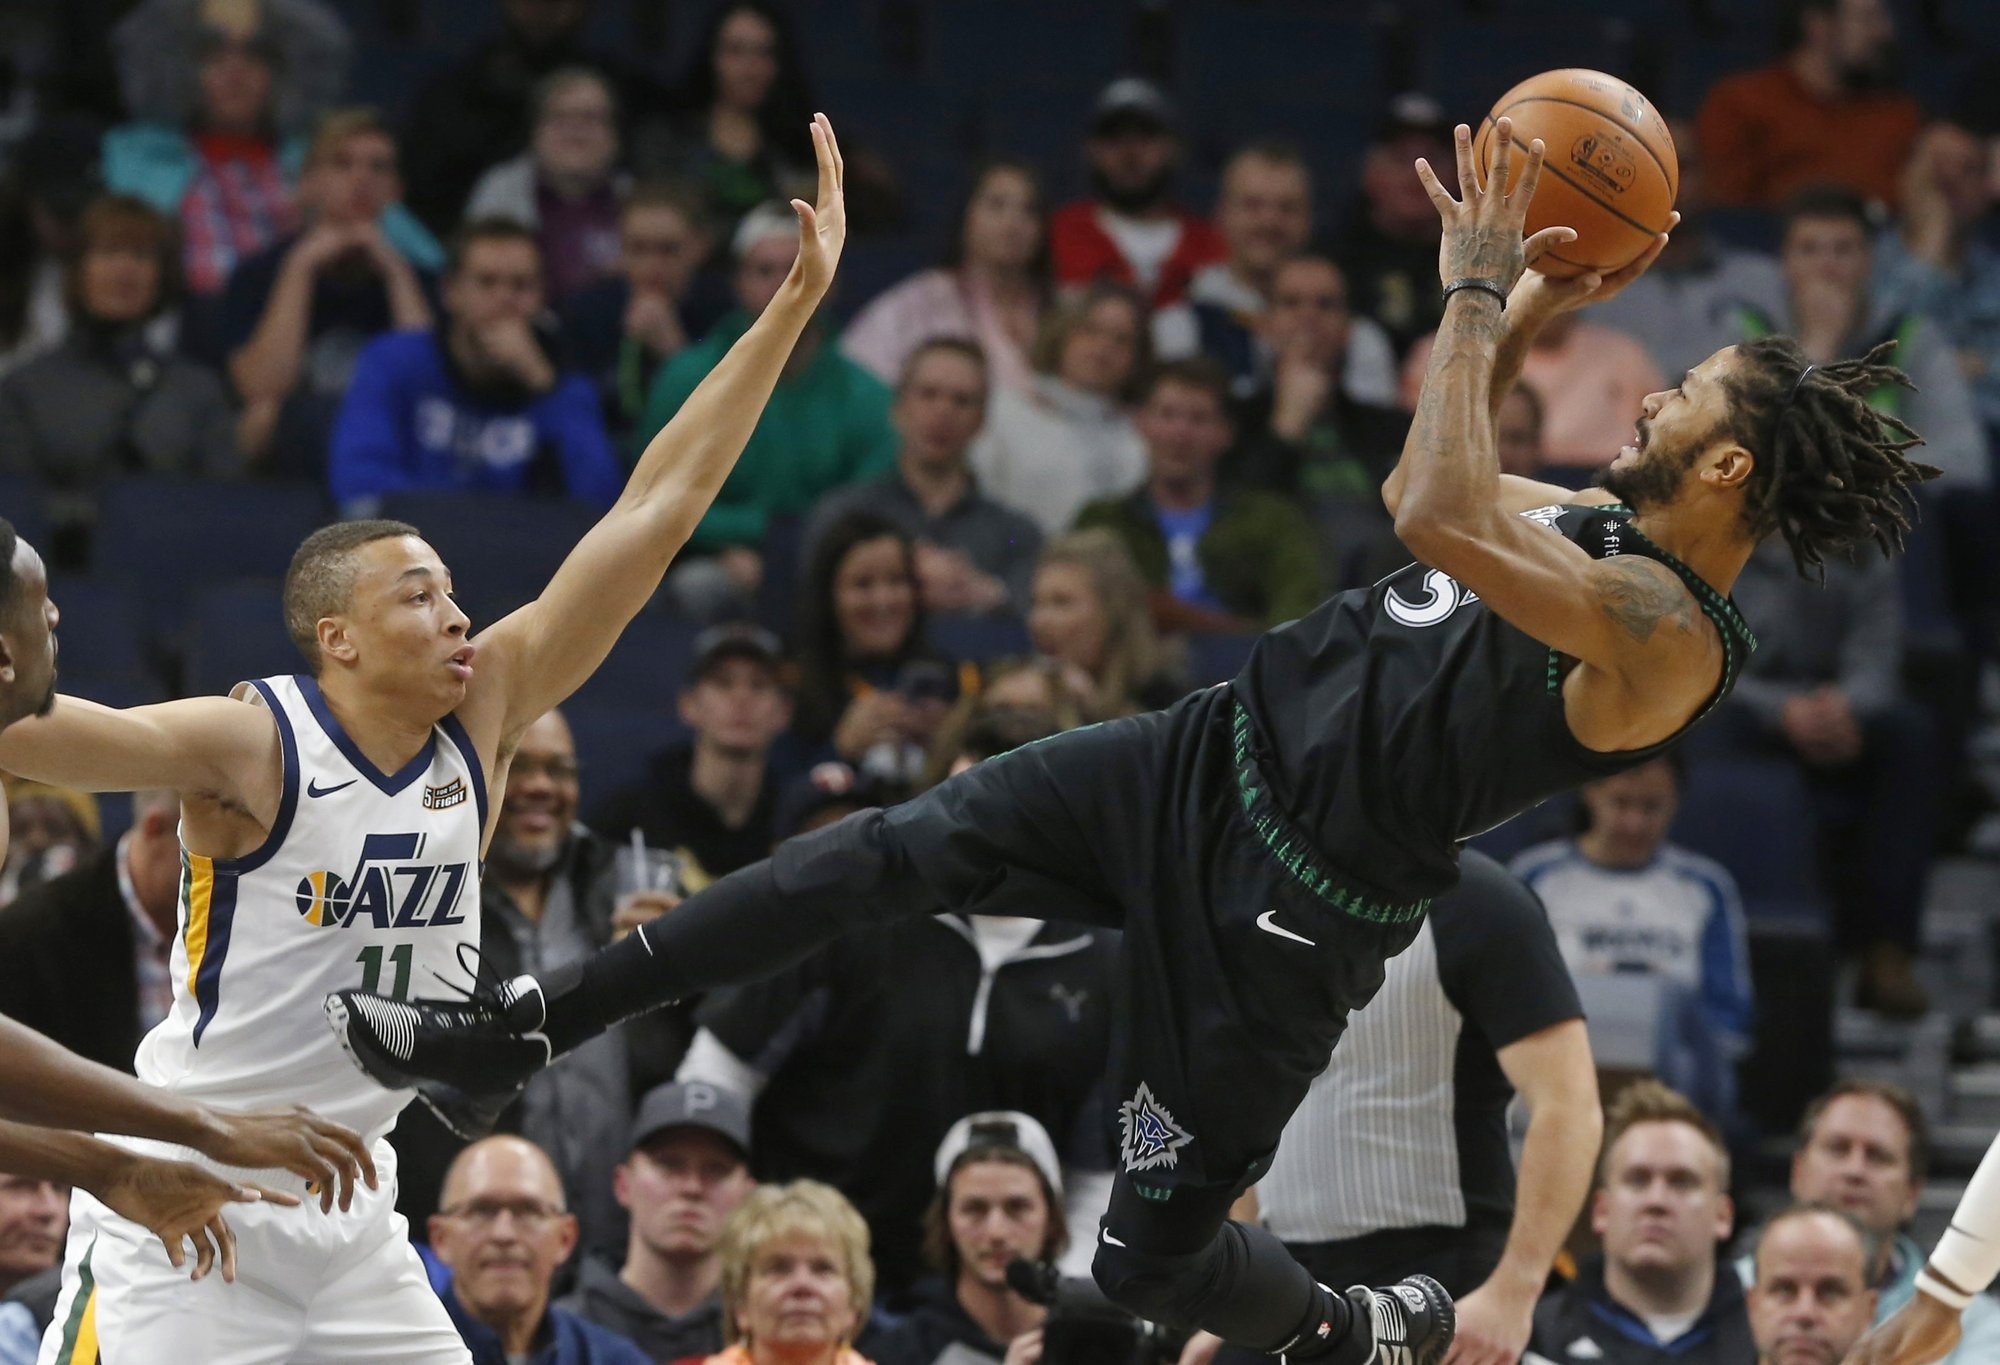 Rose scores career-high 50 as Timberwolves top Jazz 128-125